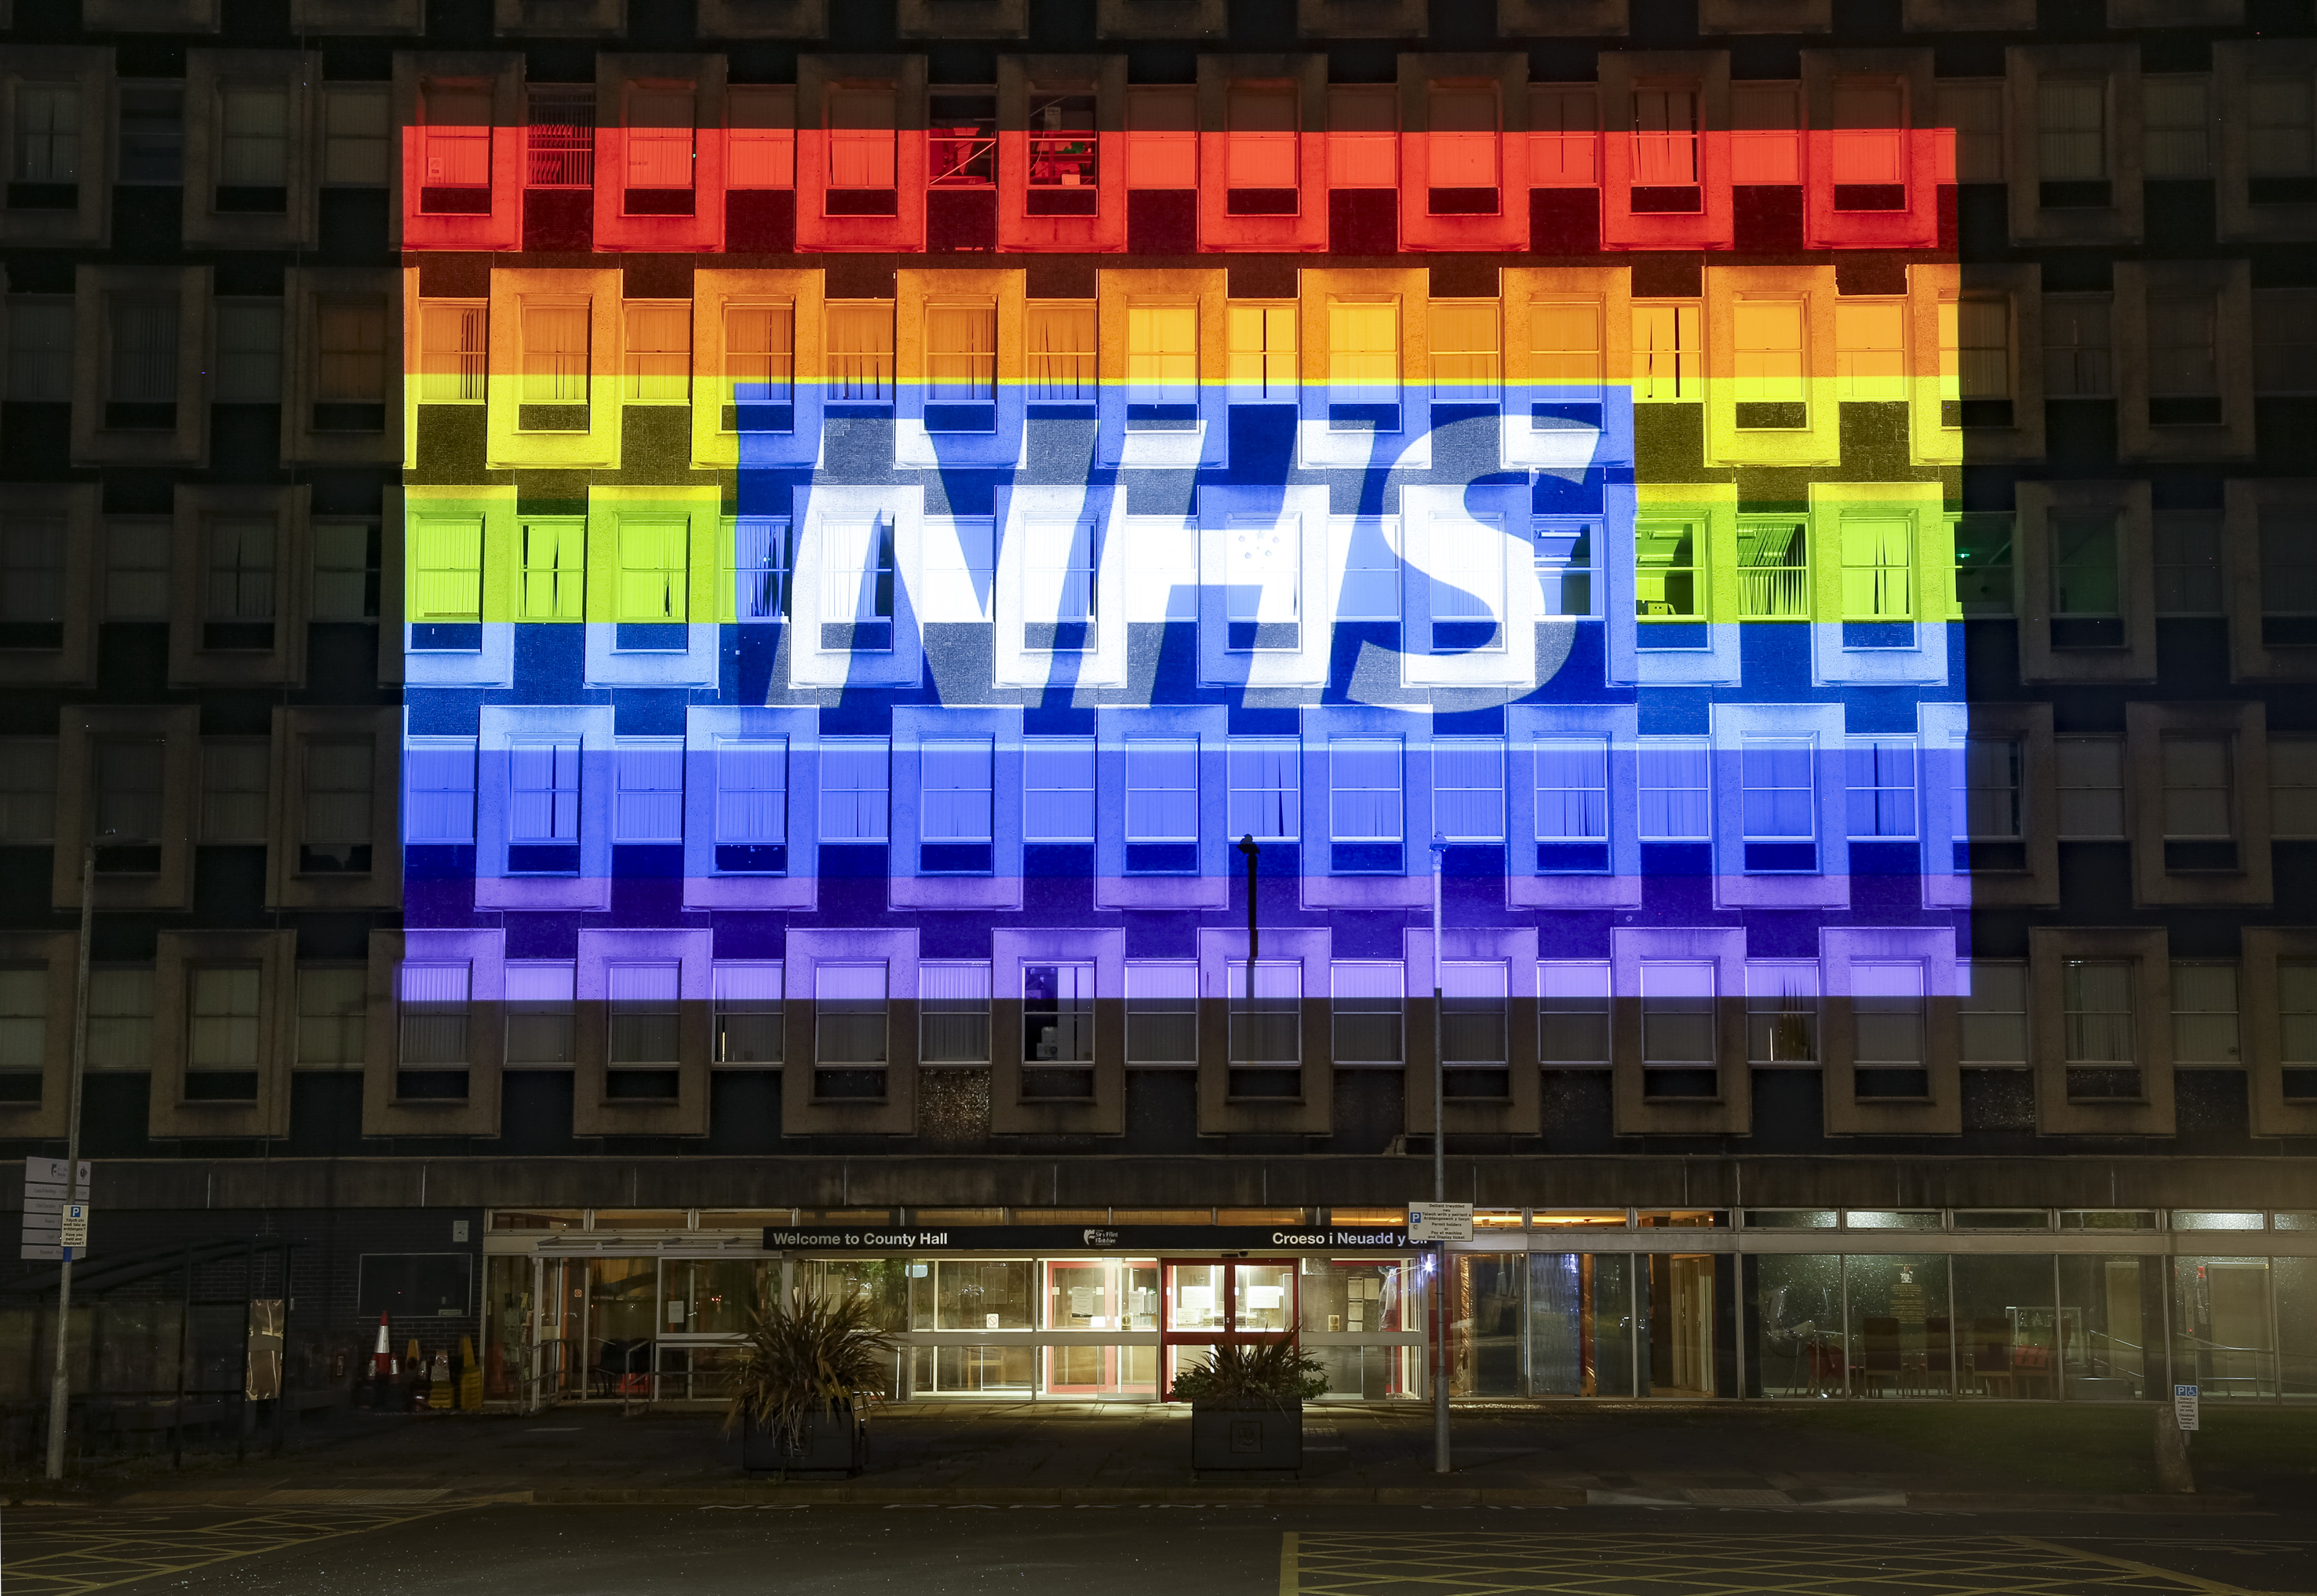 FCC support for the NHS (8 of 8).jpg